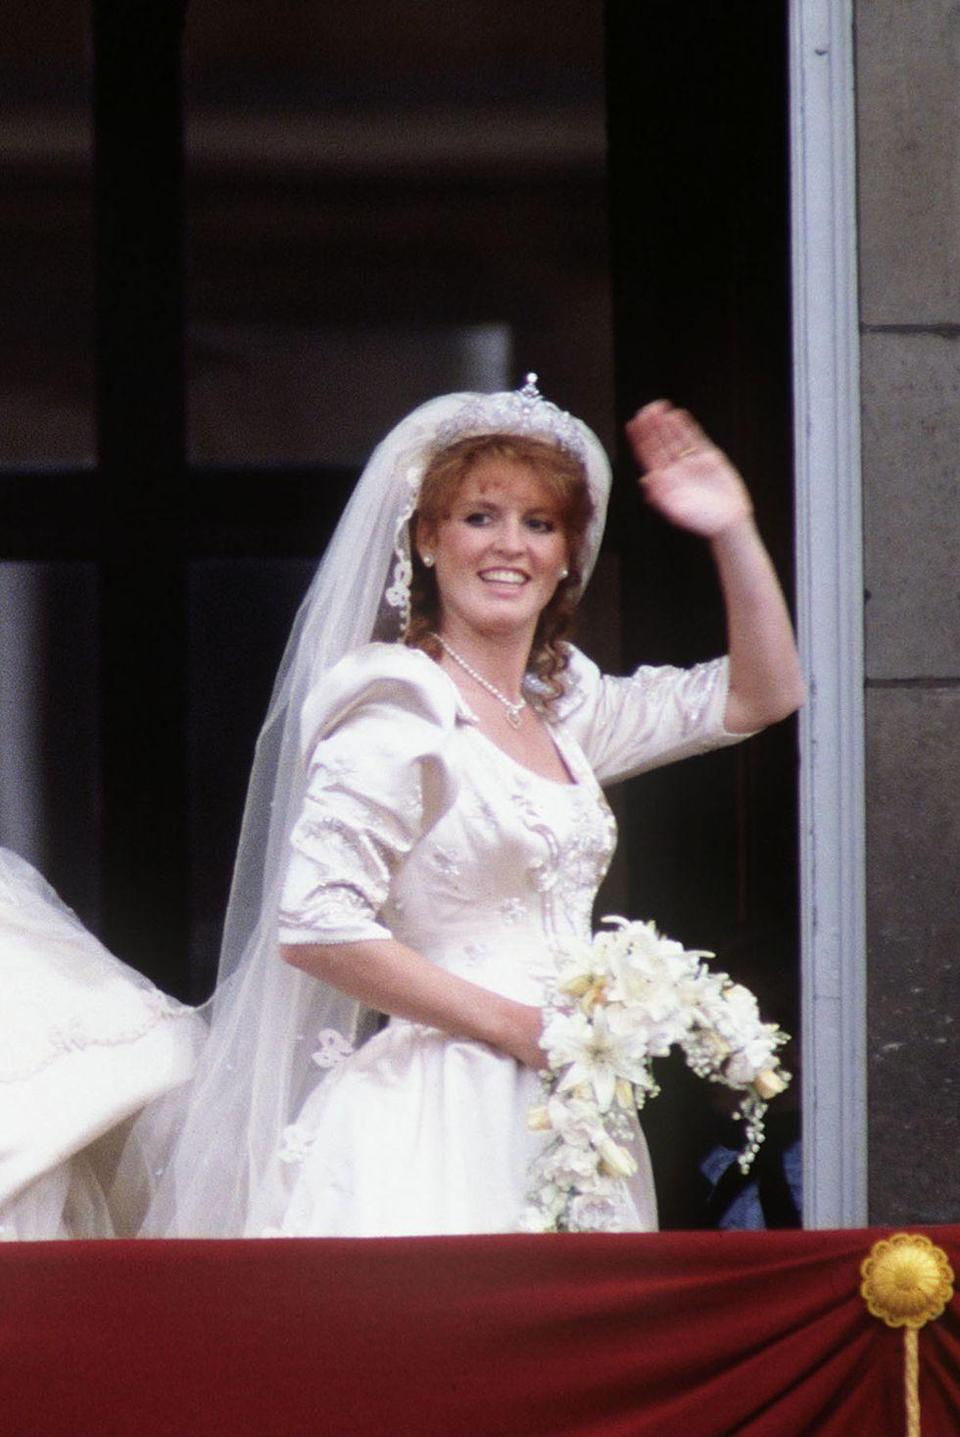 "<p><strong>Wedding date: </strong>July 23, 1986</p><p><strong>Wedding tiara:</strong> Sarah wore a diamond and platinum tiara for her wedding to <a href=""https://www.townandcountrymag.com/society/tradition/a12838338/prince-andrew-facts/"" rel=""nofollow noopener"" target=""_blank"" data-ylk=""slk:Prince Andrew, the Queen's second son."" class=""link rapid-noclick-resp"">Prince Andrew, the Queen's second son.</a> The tiara, which is often called the York Diamond Tiara, was purchased by the Queen and Duke of Edinburgh from Garrard. <a href=""http://orderofsplendor.blogspot.co.uk/2016/07/tiara-thursday-york-diamond-tiara.html"" rel=""nofollow noopener"" target=""_blank"" data-ylk=""slk:It is part of a"" class=""link rapid-noclick-resp"">It is part of a</a> necklace, earring, and bracelet set given to Sarah by the Queen and Prince Philip as a wedding gift. </p>"